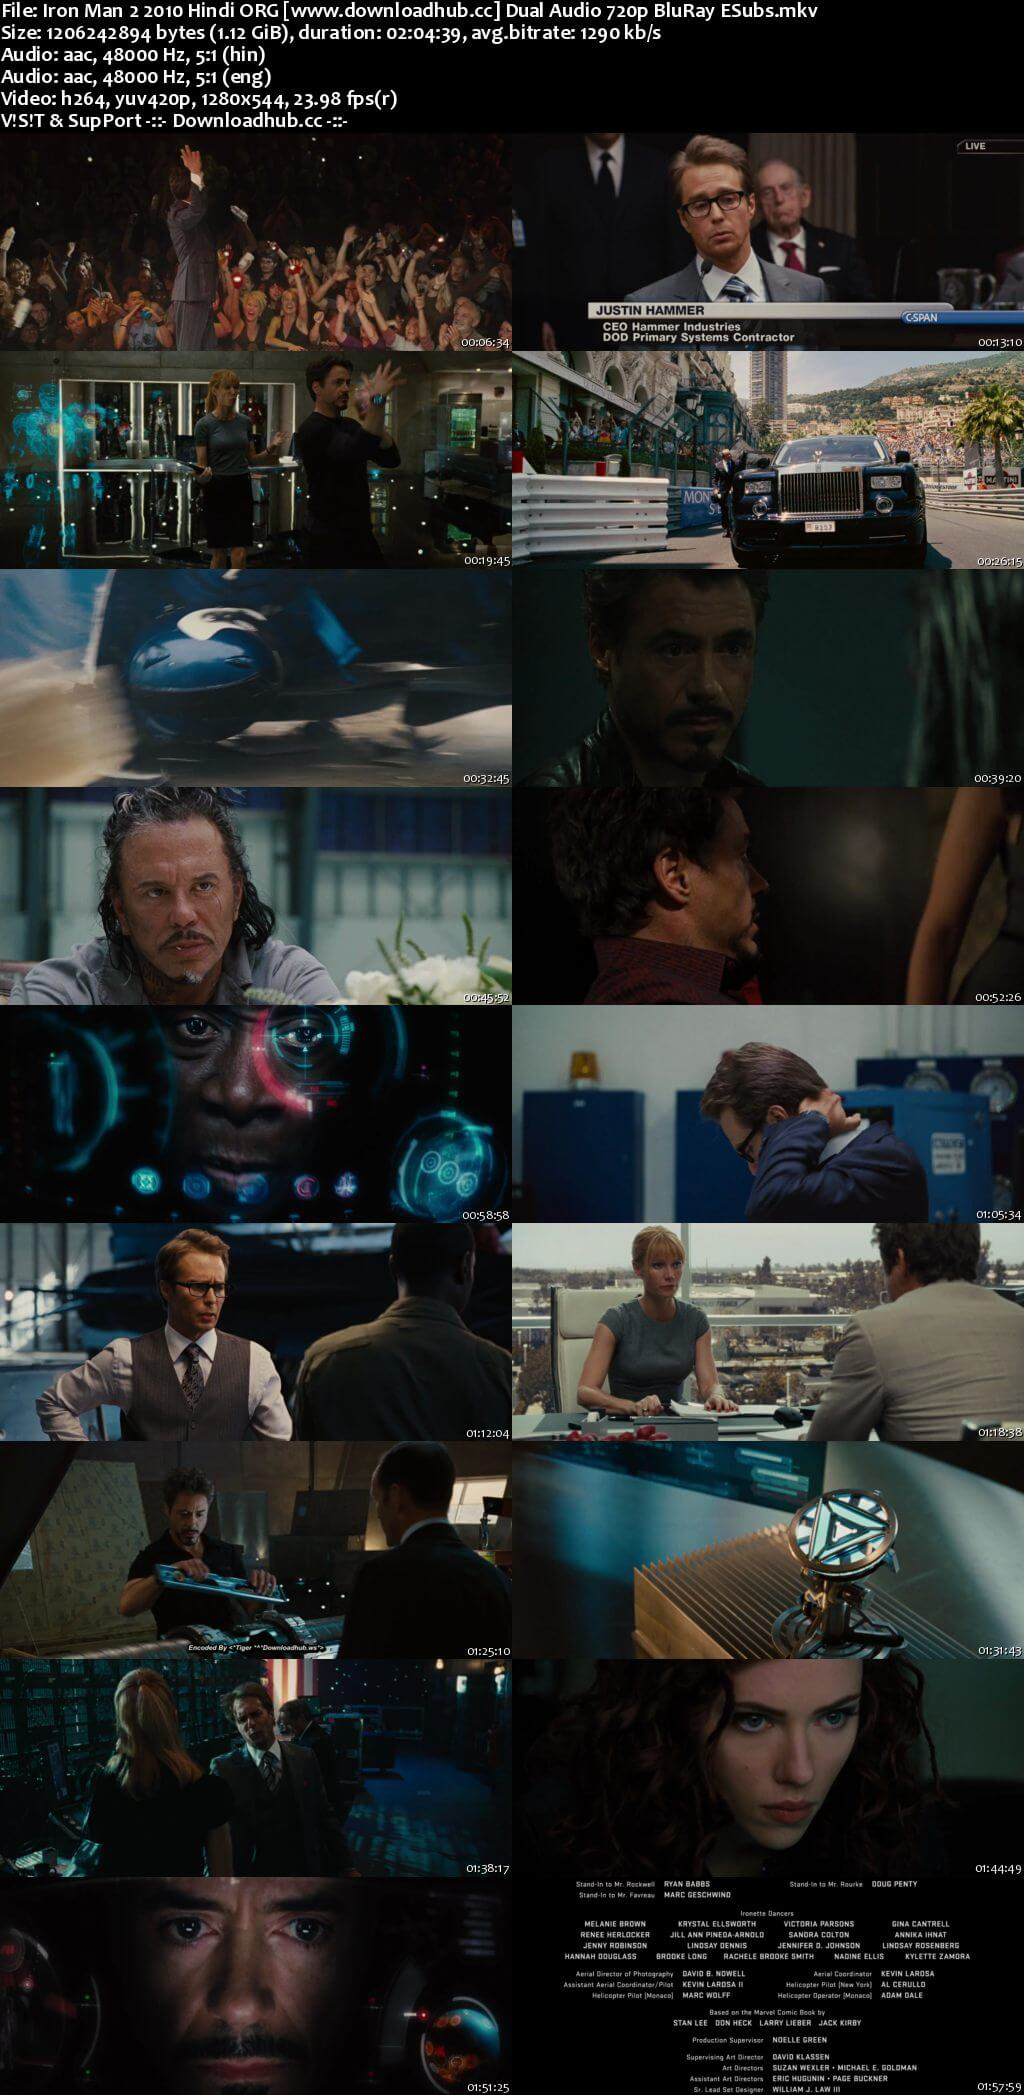 Iron Man 2 2010 Hindi ORG Dual Audio 720p BluRay ESubs